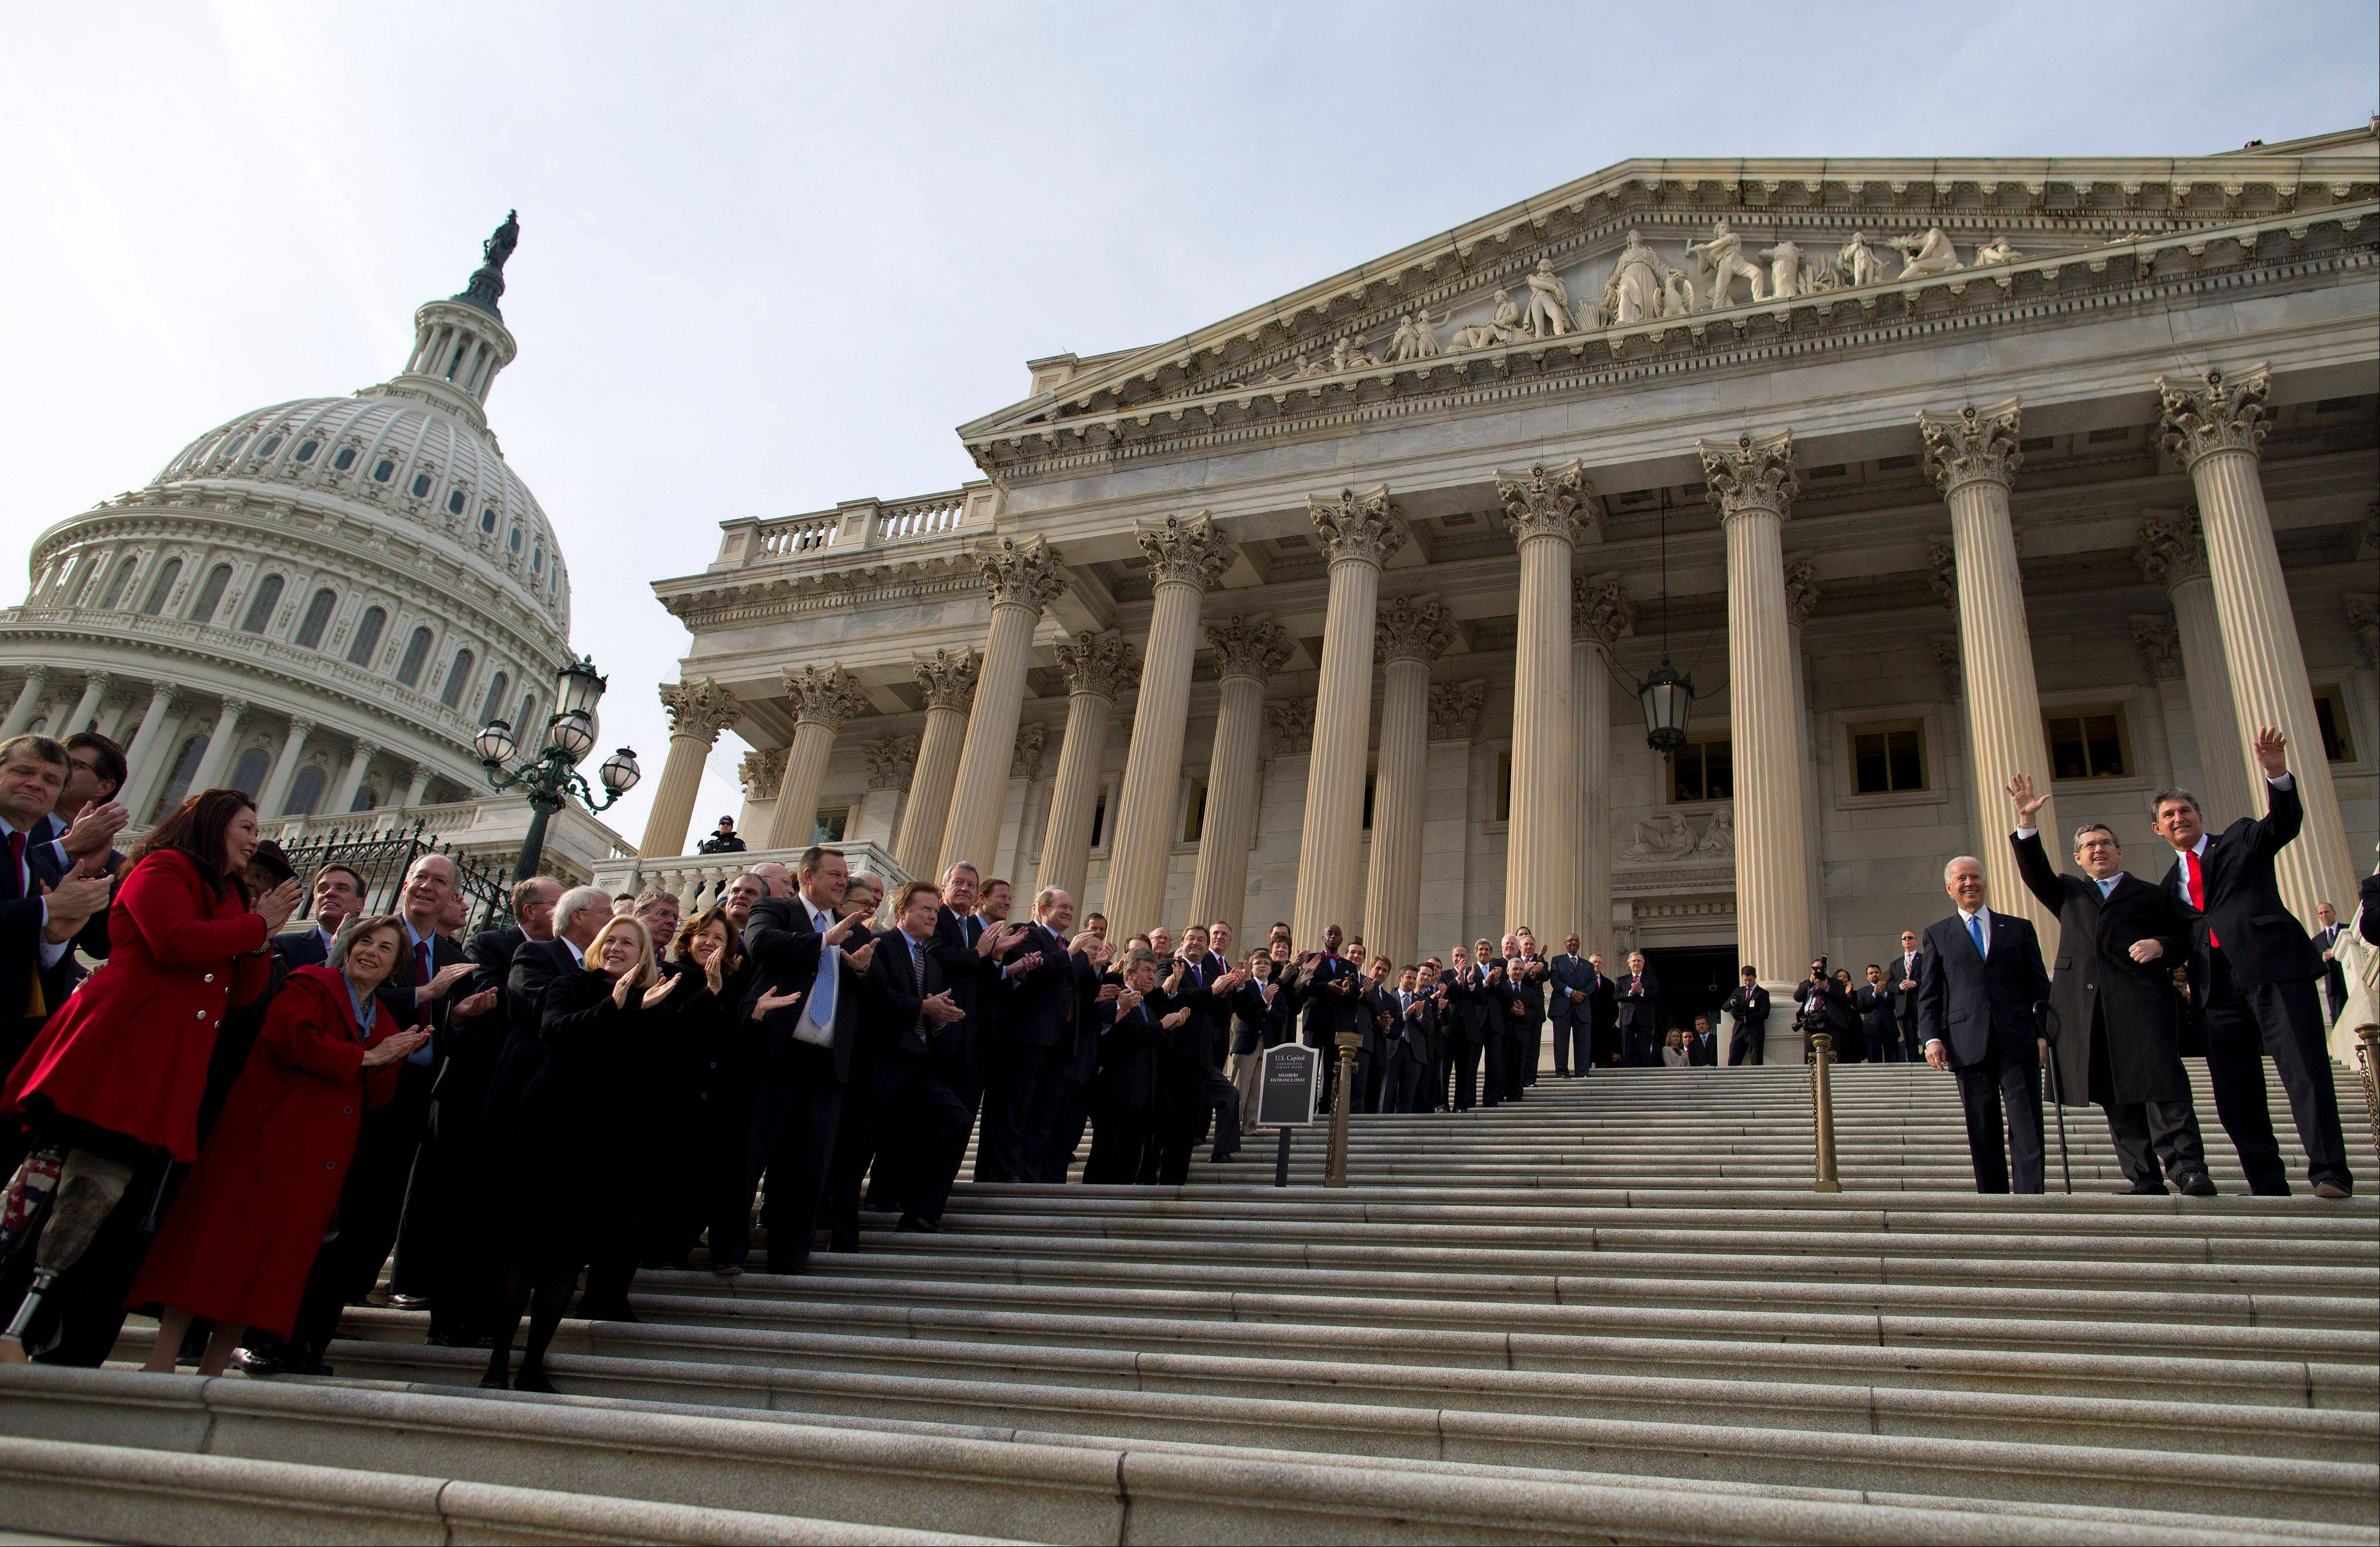 Sen. Mark Kirk, a Highland Park Republican, waves as he walks up the Capitol steps to mark his return to Congress. Members of Congress line the steps and Kirk is accompanied by Sen. Joe Manchin of West Virginia, to his right, and Vice President Joe Biden, on his left.